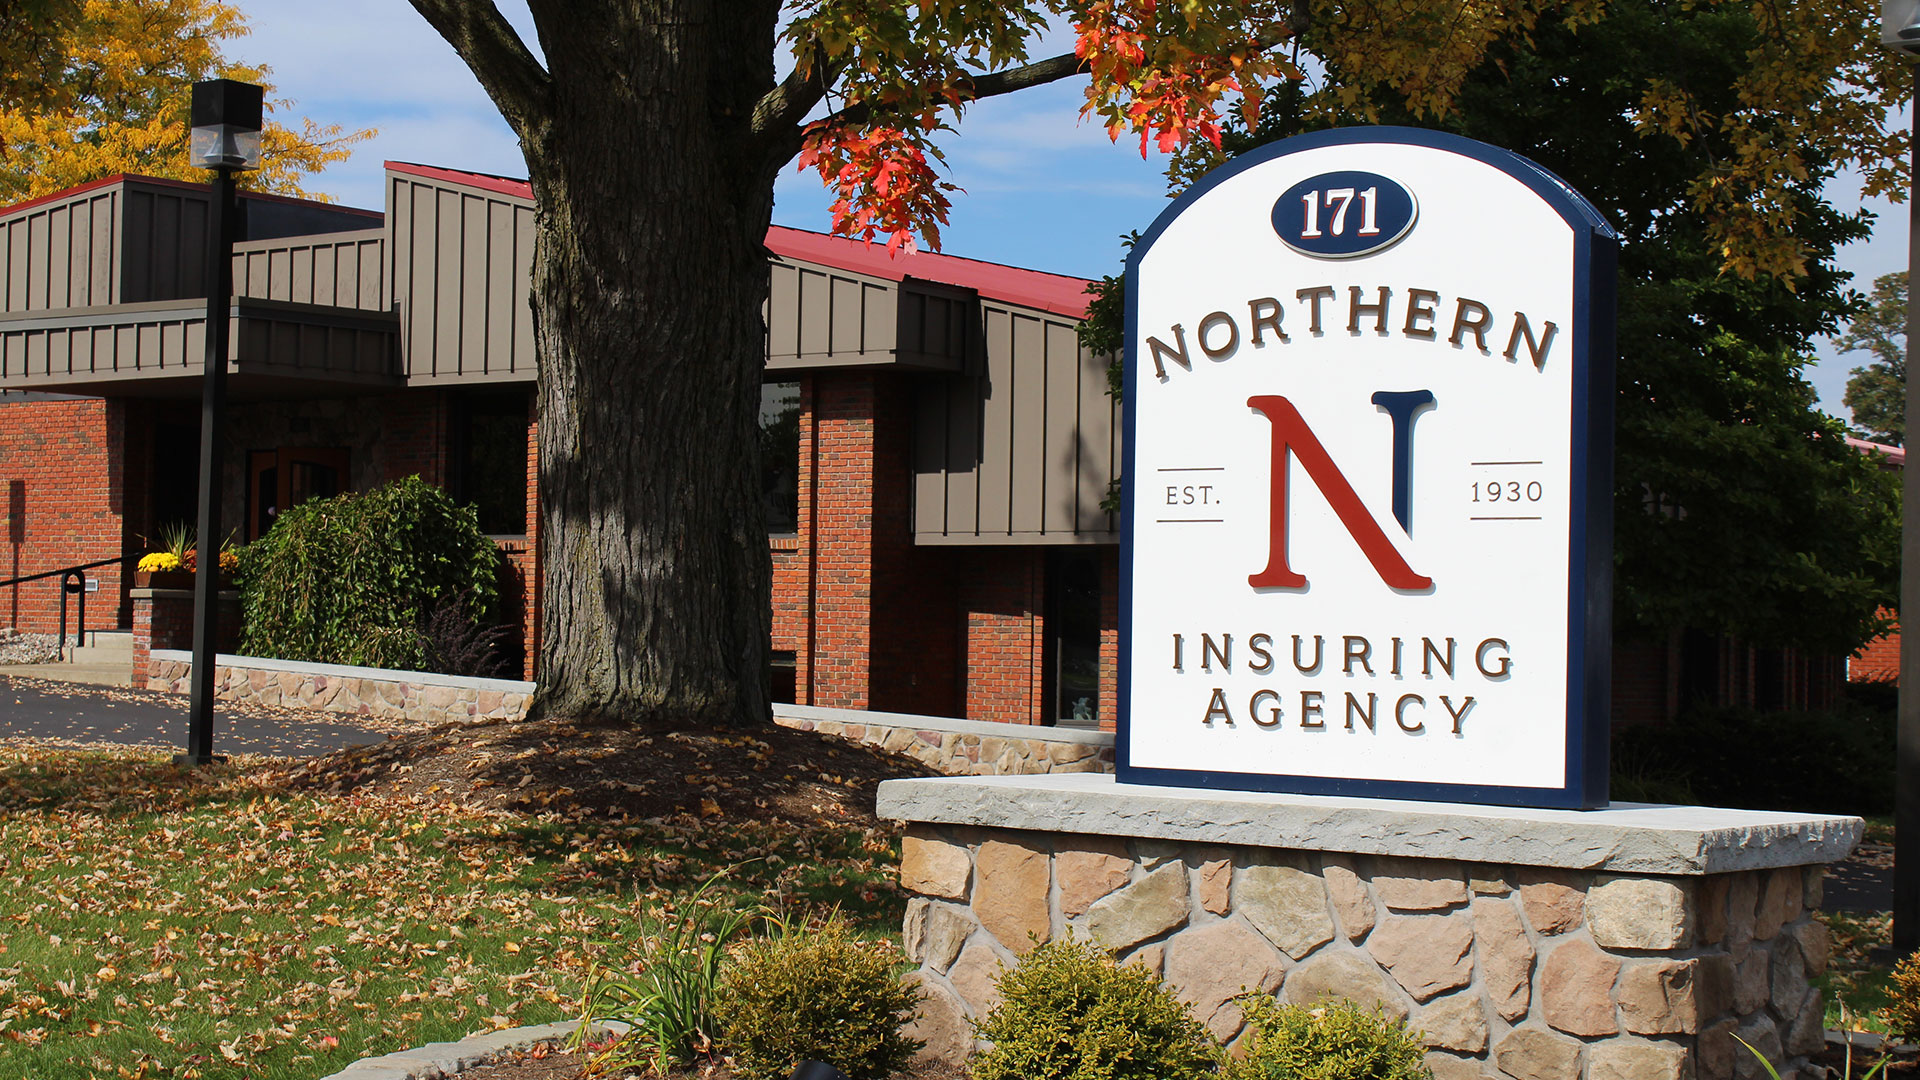 Northern-Insuring-website-redesign-project-by-Growtrends-Marketing-Agency_SEO_social-media-development